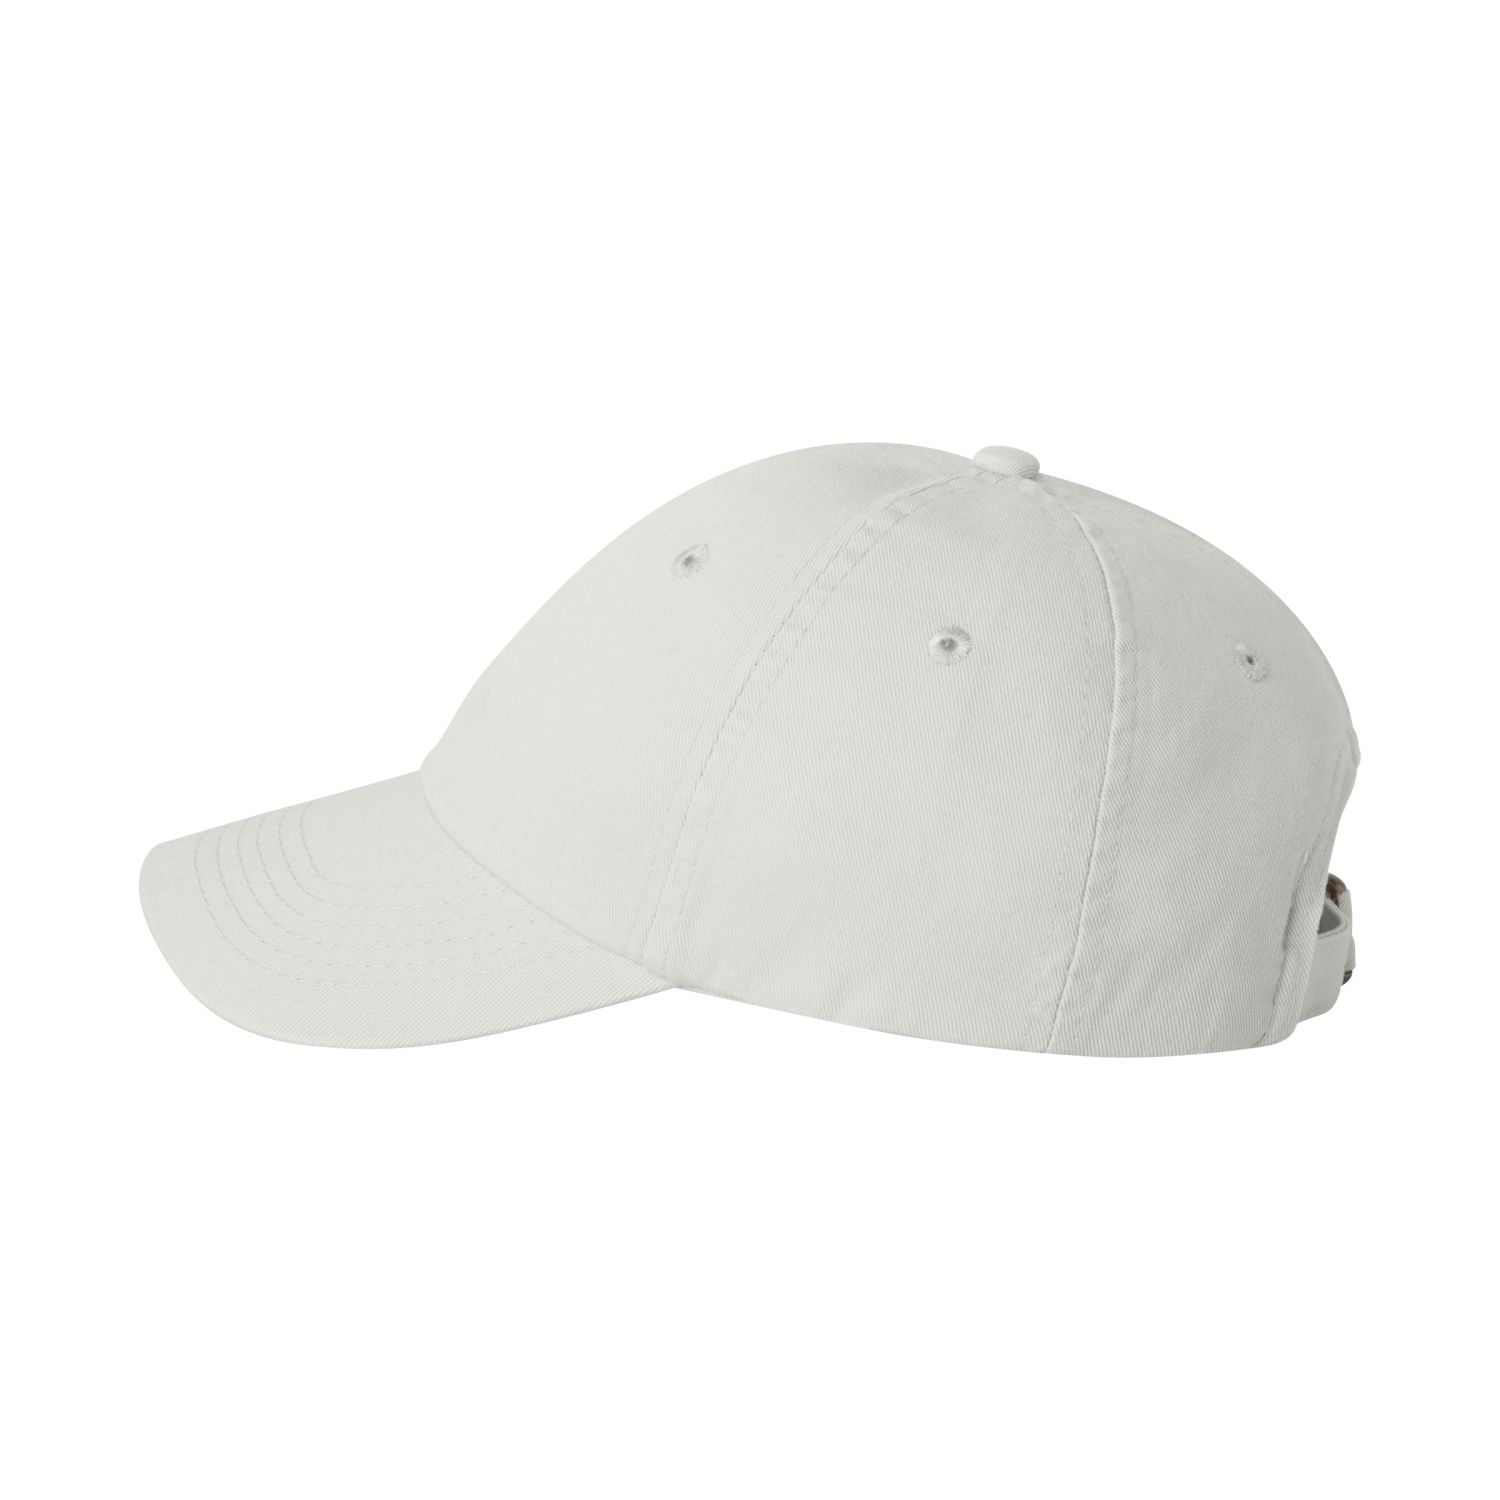 31d46283bf44a Valucap VC300Y Youth Bio-Washed Unstructured Cap - Walmart.com